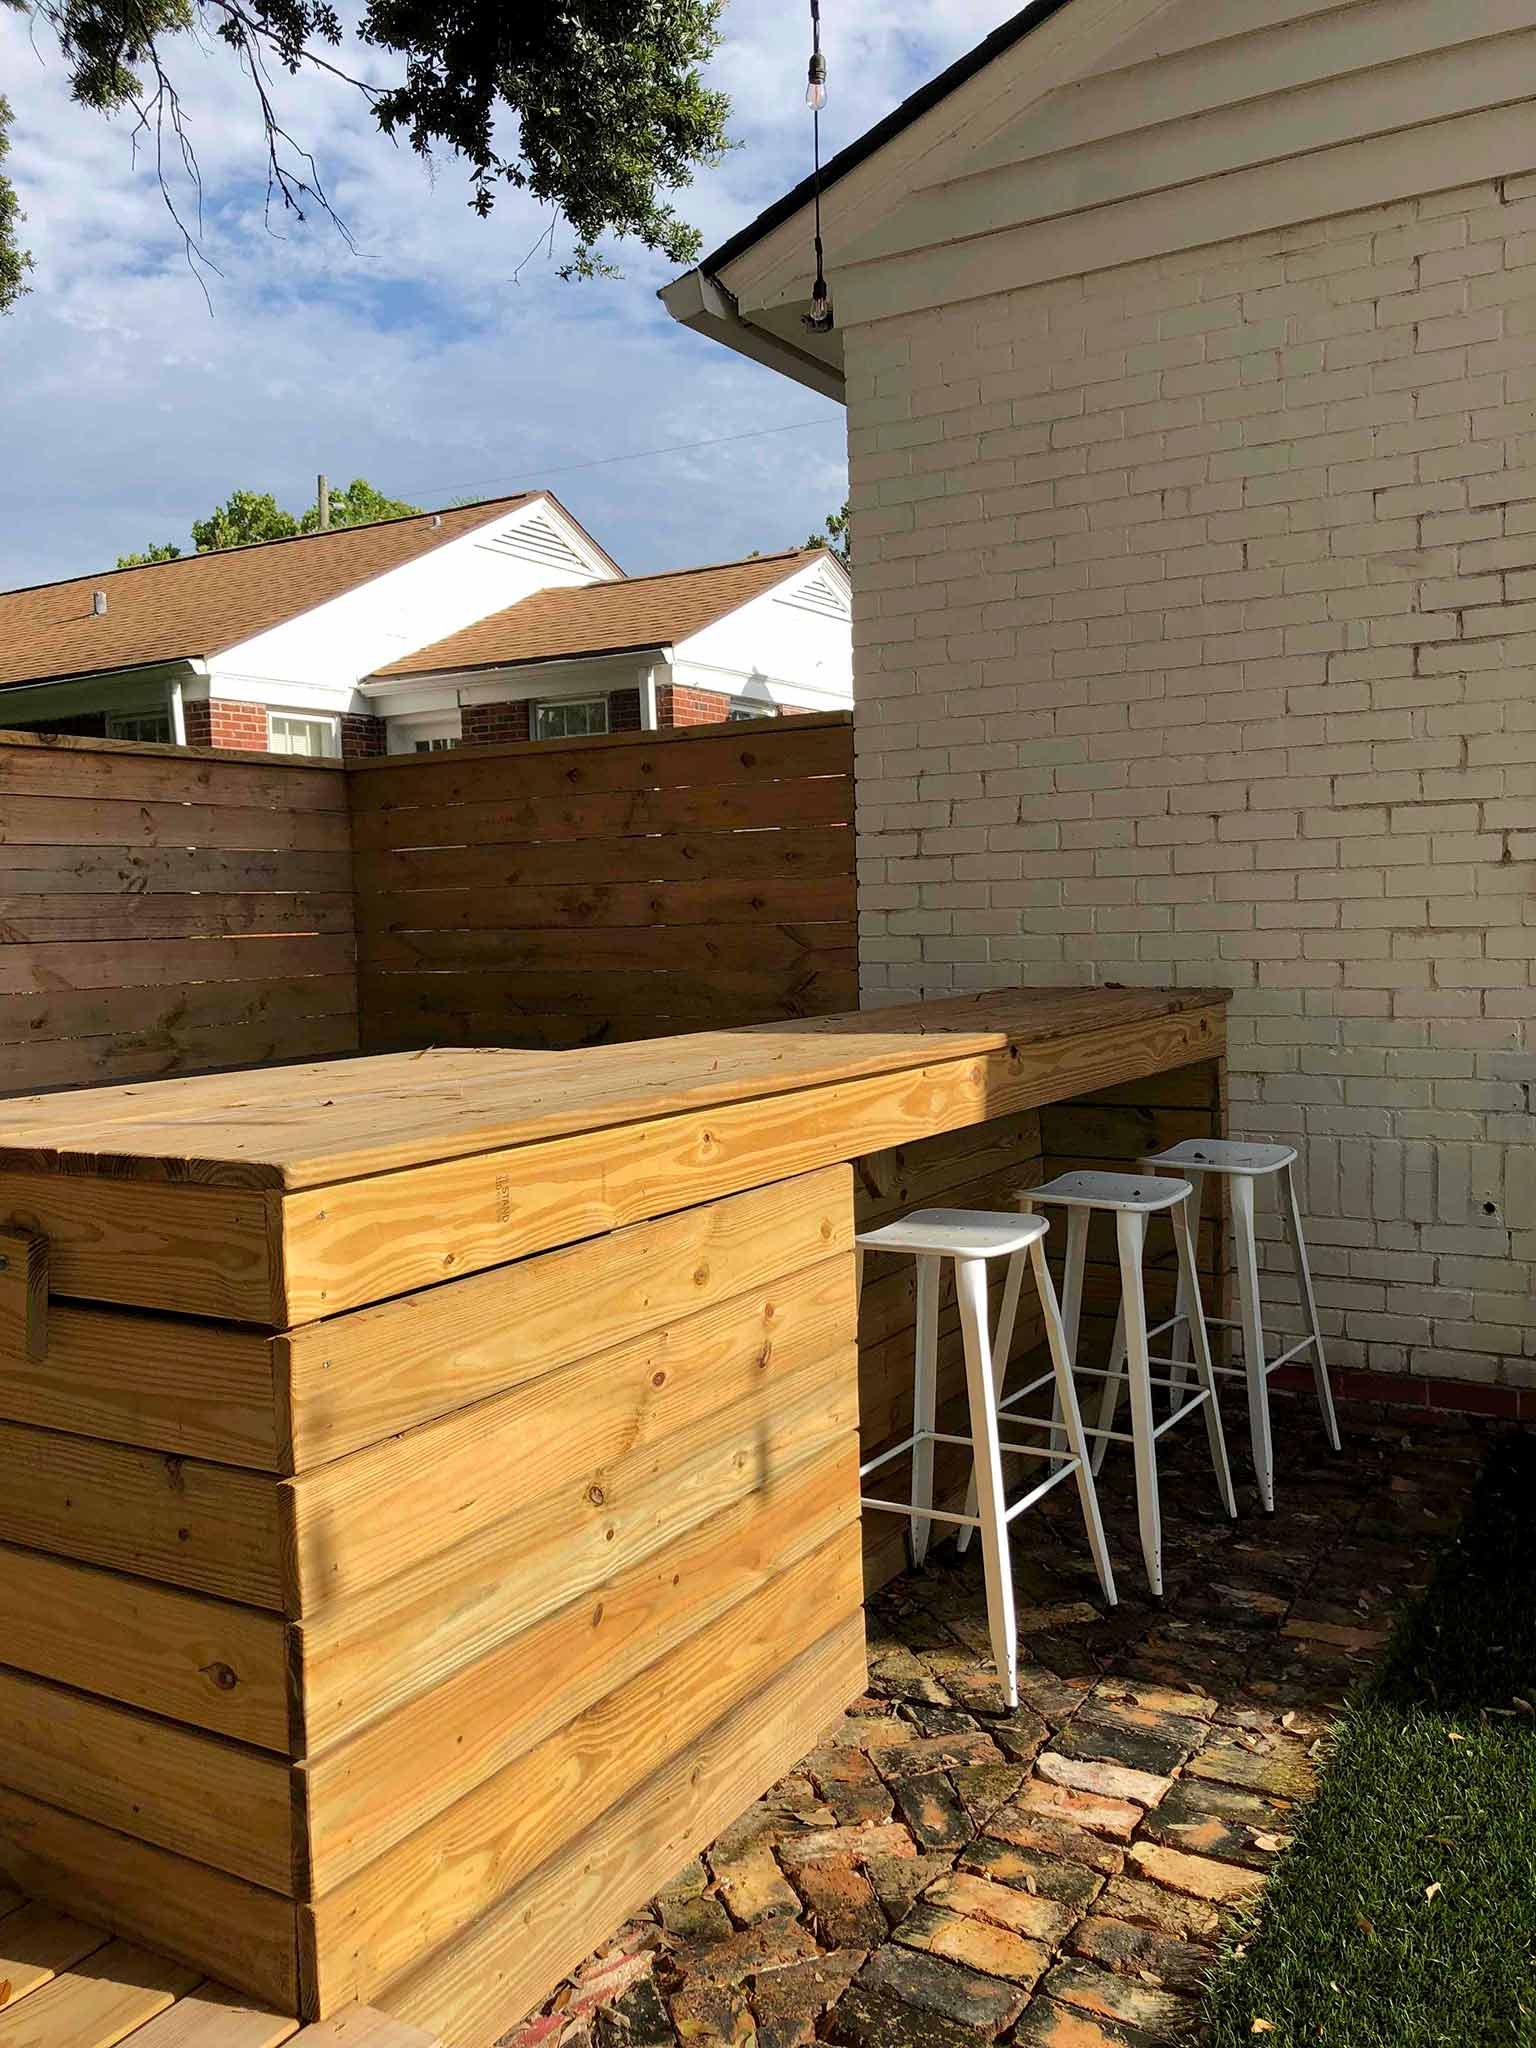 Our backyard in progress - bar and deck surrounding hot tub - That Homebird Life Blog